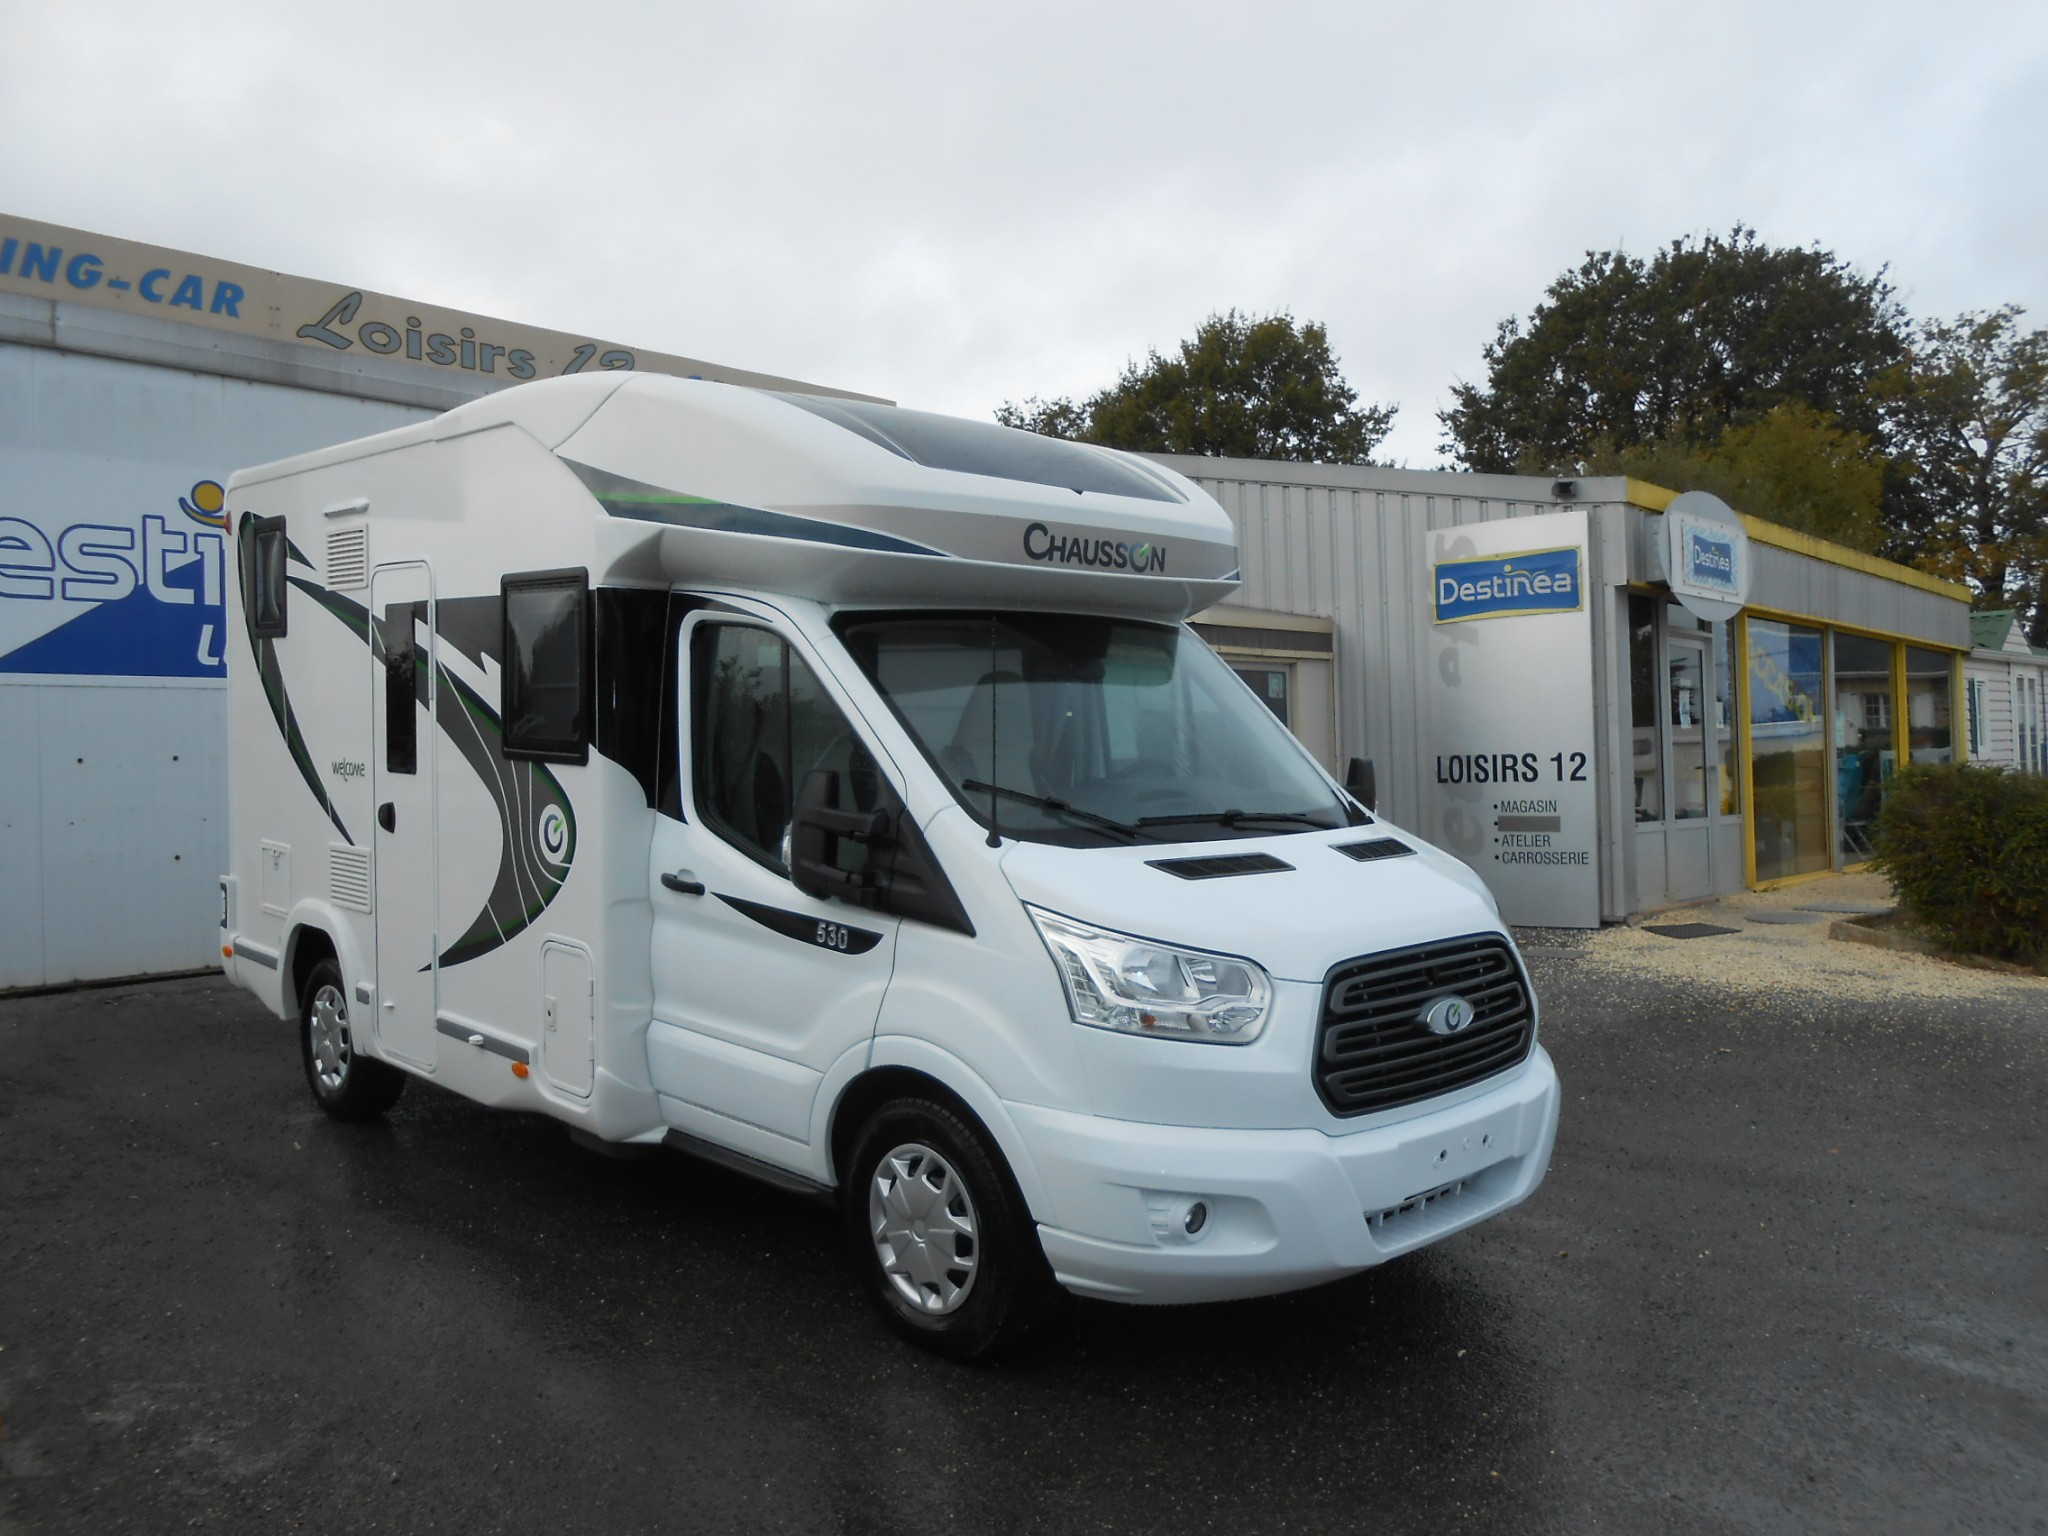 Camping-car CHAUSSON WELCOME 530